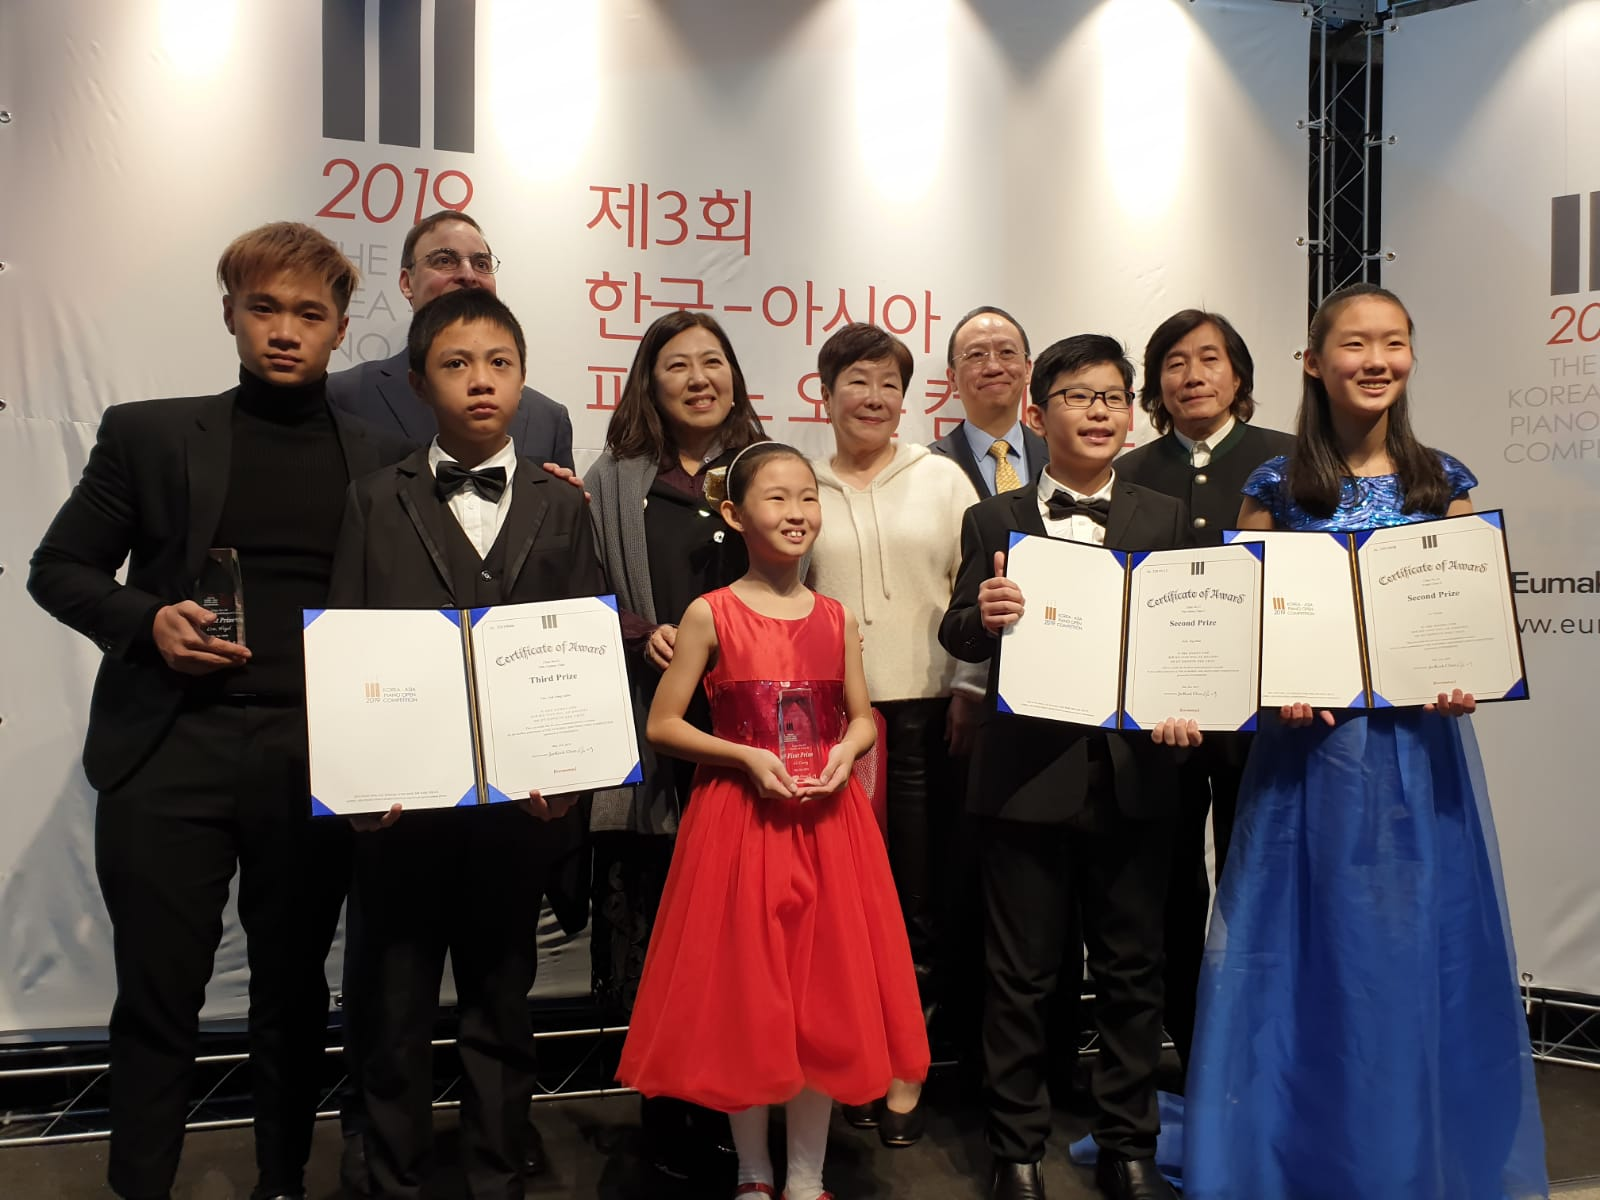 Prize winning students and jury members